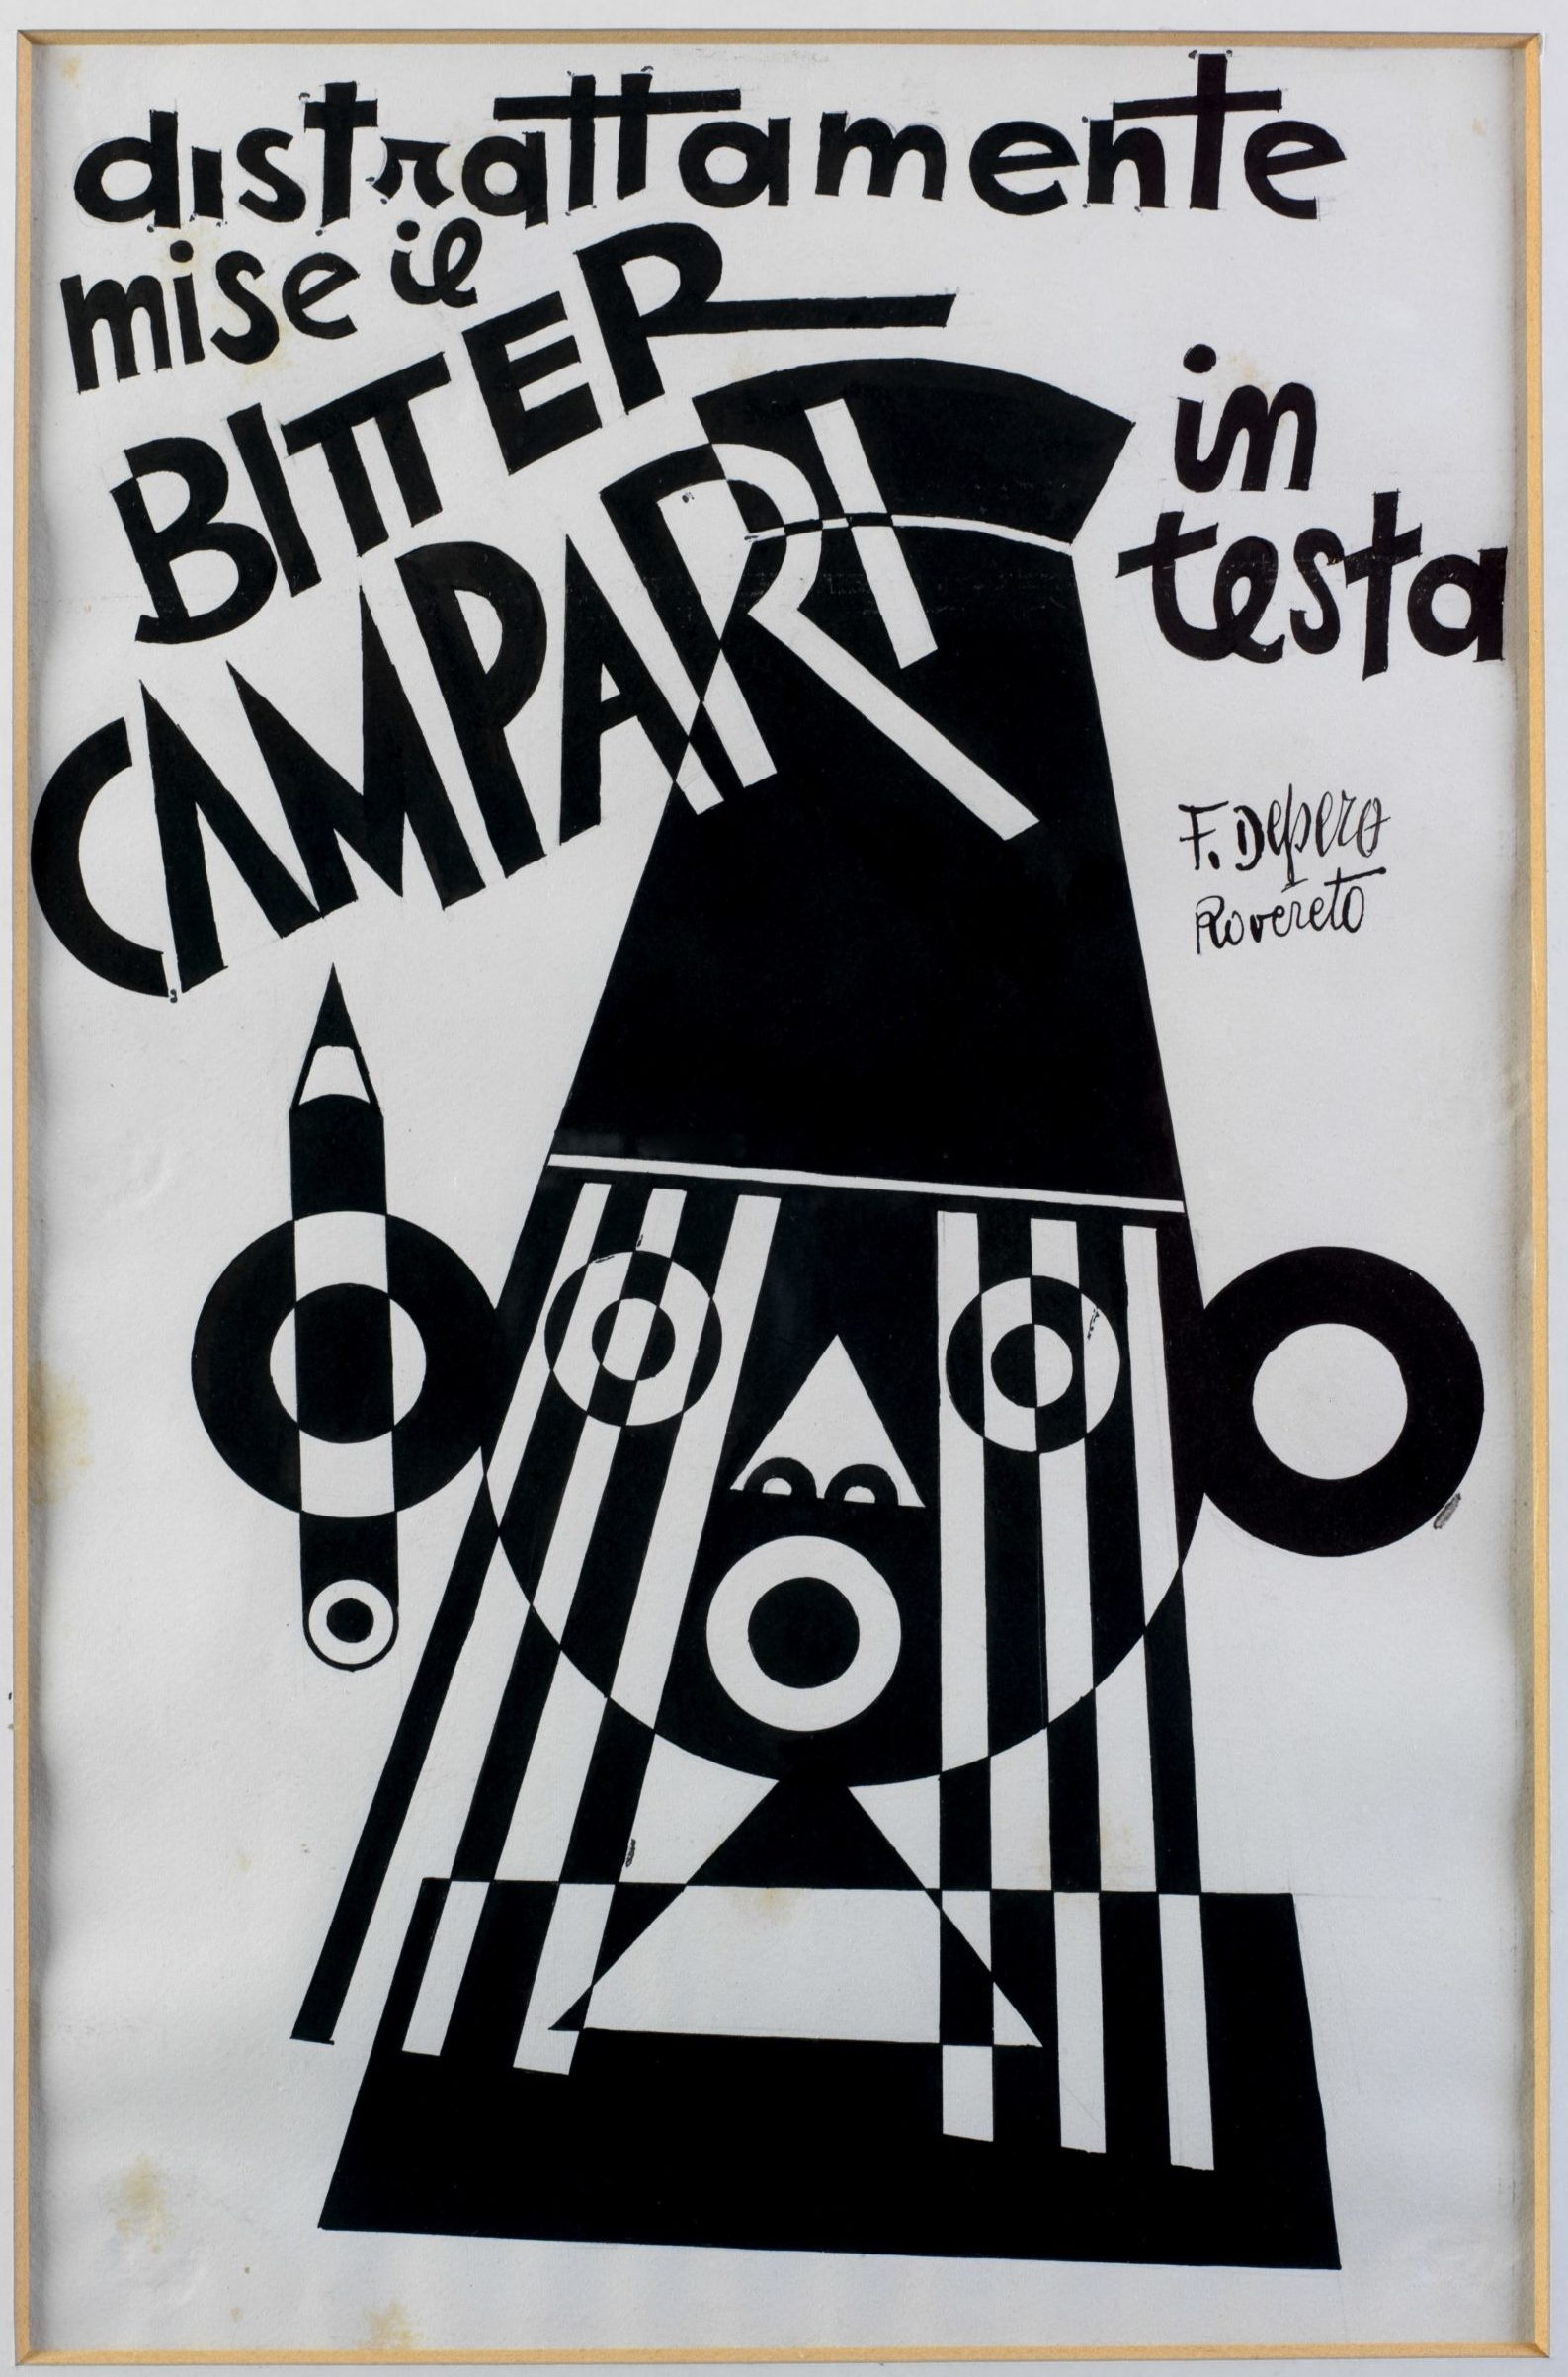 He distractedly put the Bitter Campari on his head), 1928, Fortunato Depero